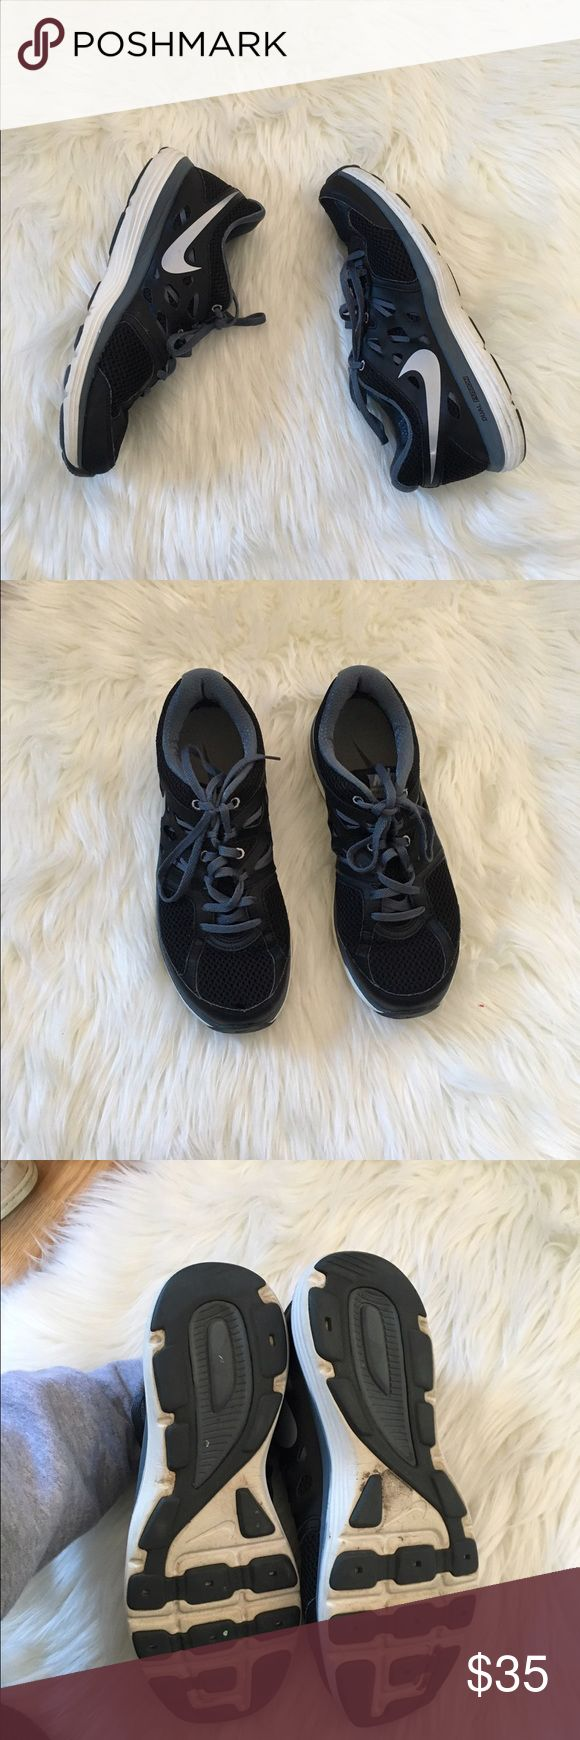 Nike Dual Fusion Lite Sneakers Excellent condition! Very little wear on these. Size 8.5 women's. NO TRADES PLEASE Nike Shoes Sneakers